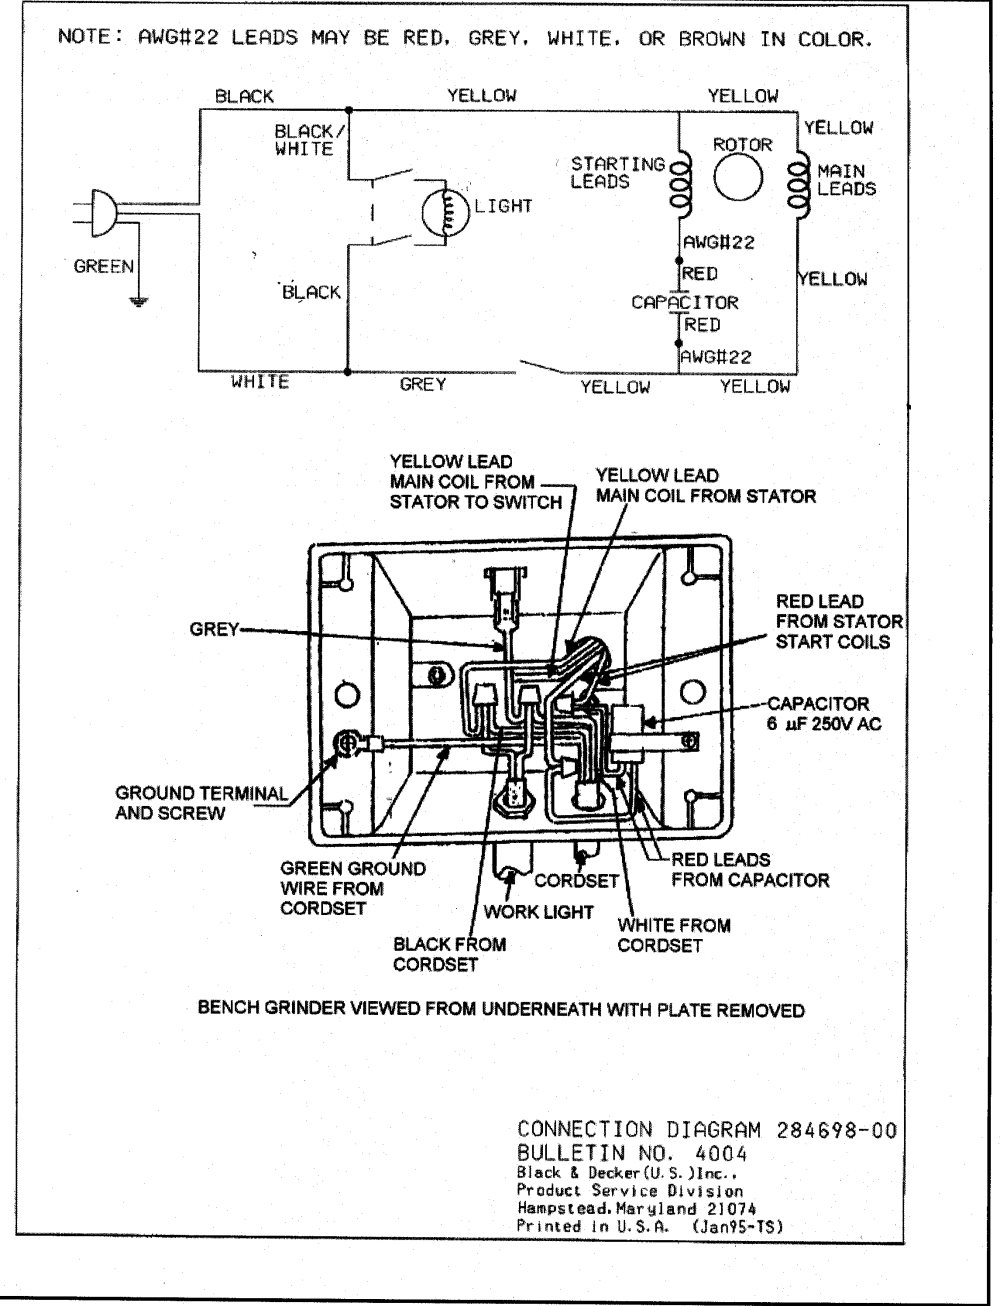 medium resolution of wiring diagram for a bench grinder wiring diagram used dayton bench grinder wiring diagram bench grinder wire diagram